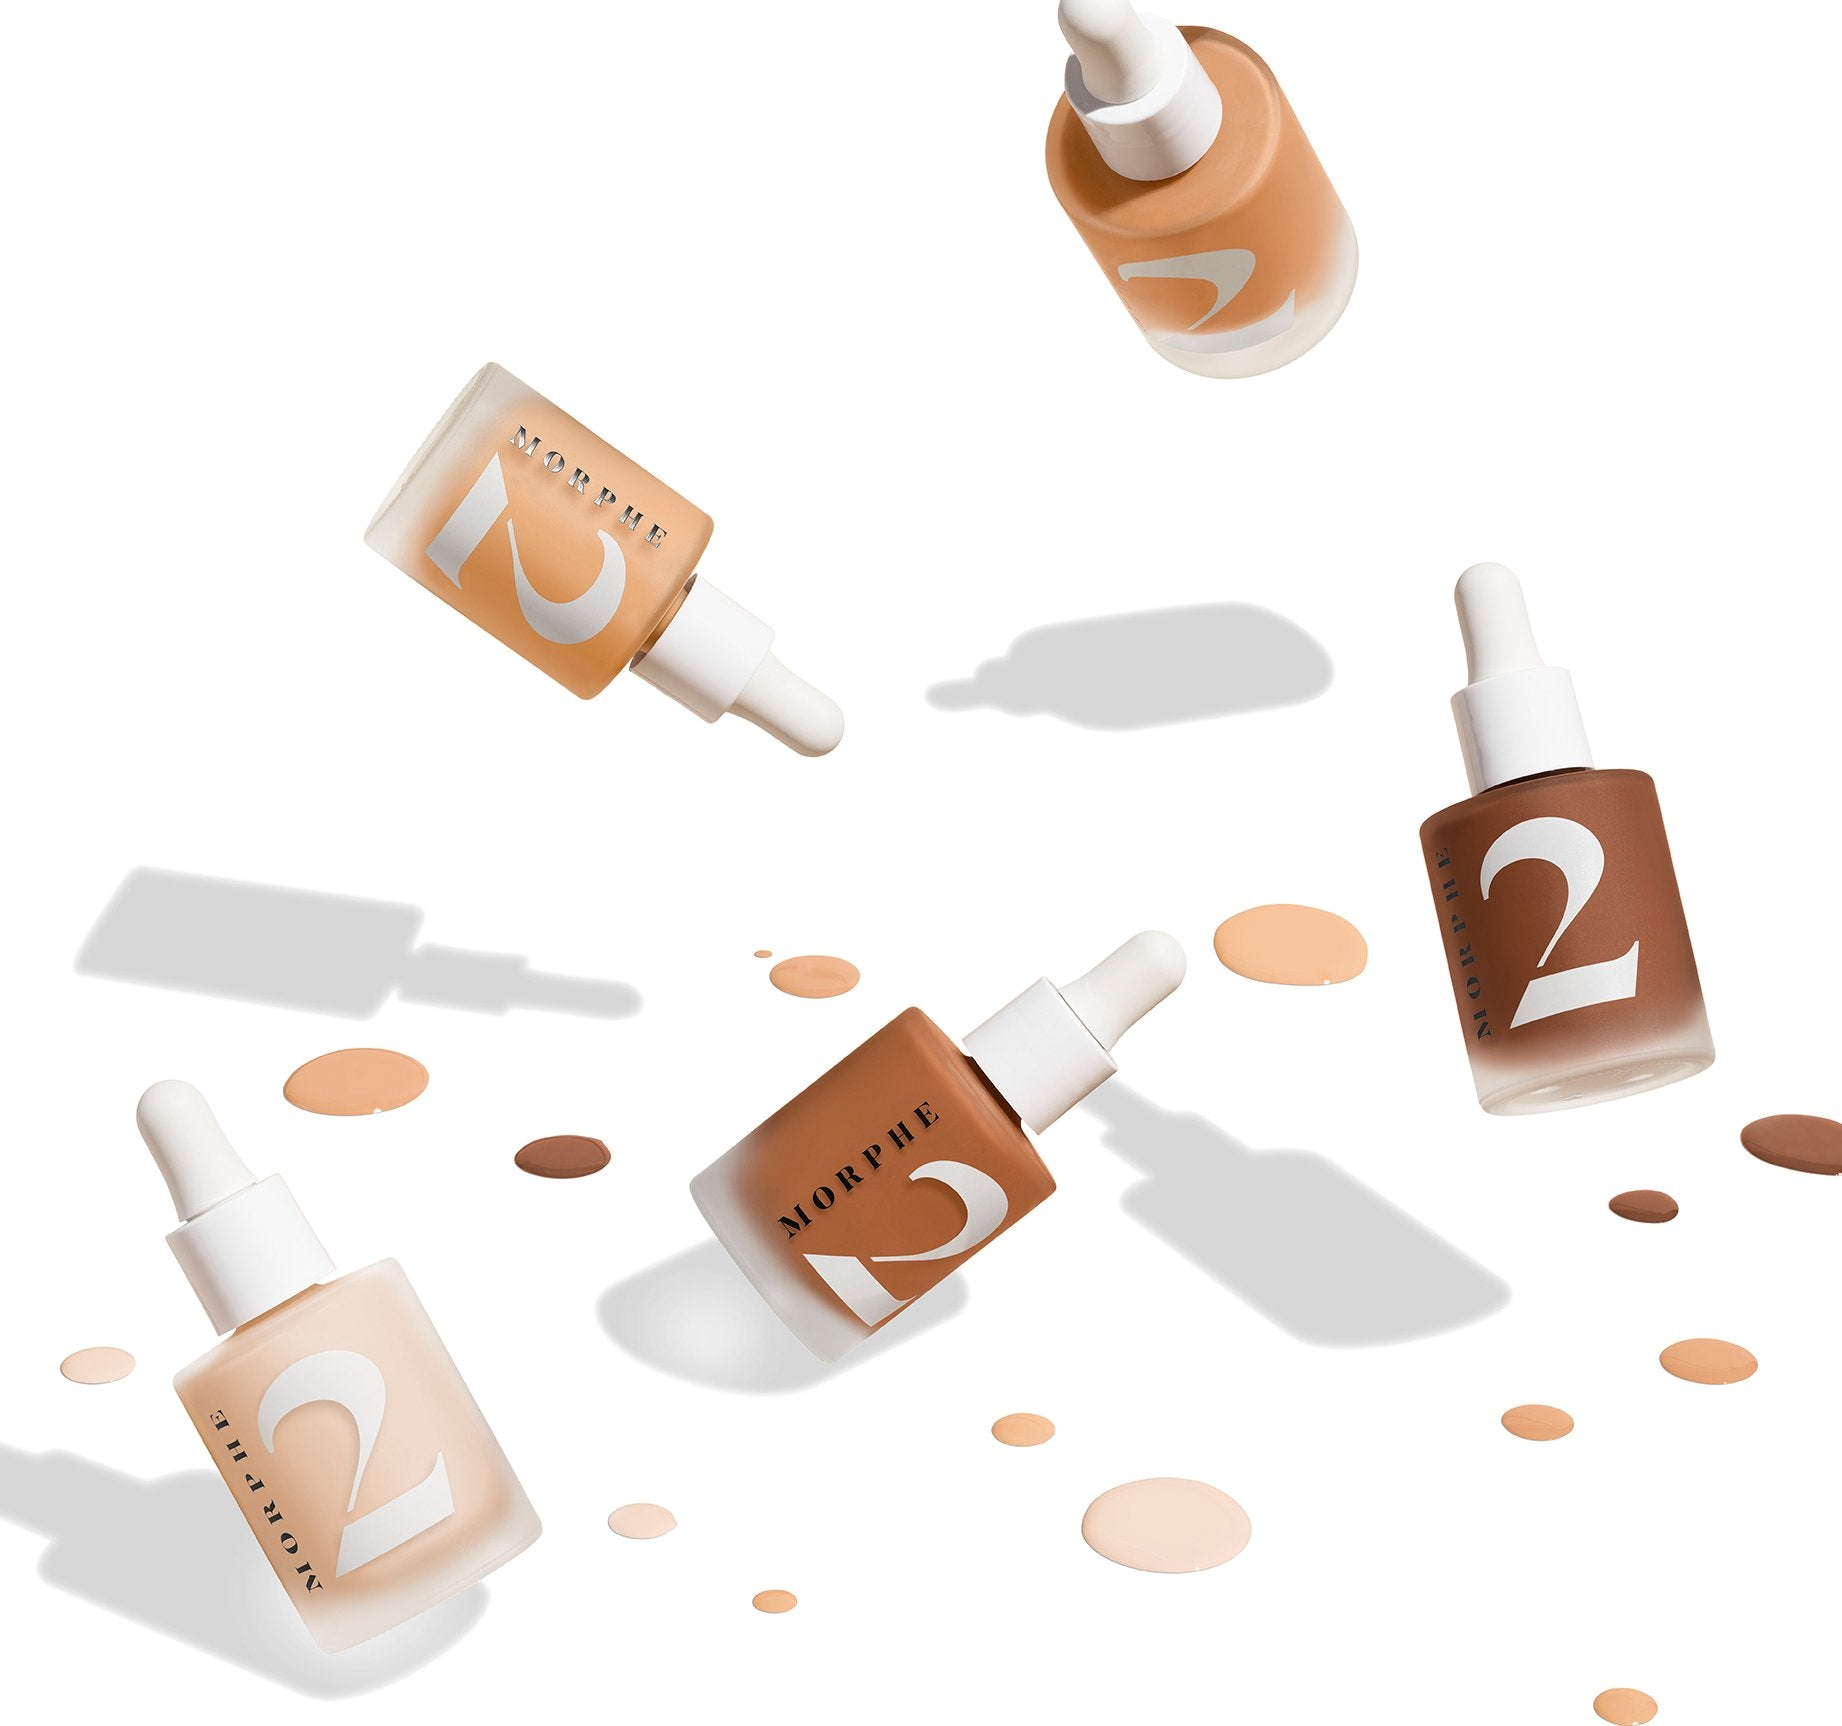 Hint Hint Skin Tint Hint Of Creme How will it last on the skin? hint hint skin tint hint of creme